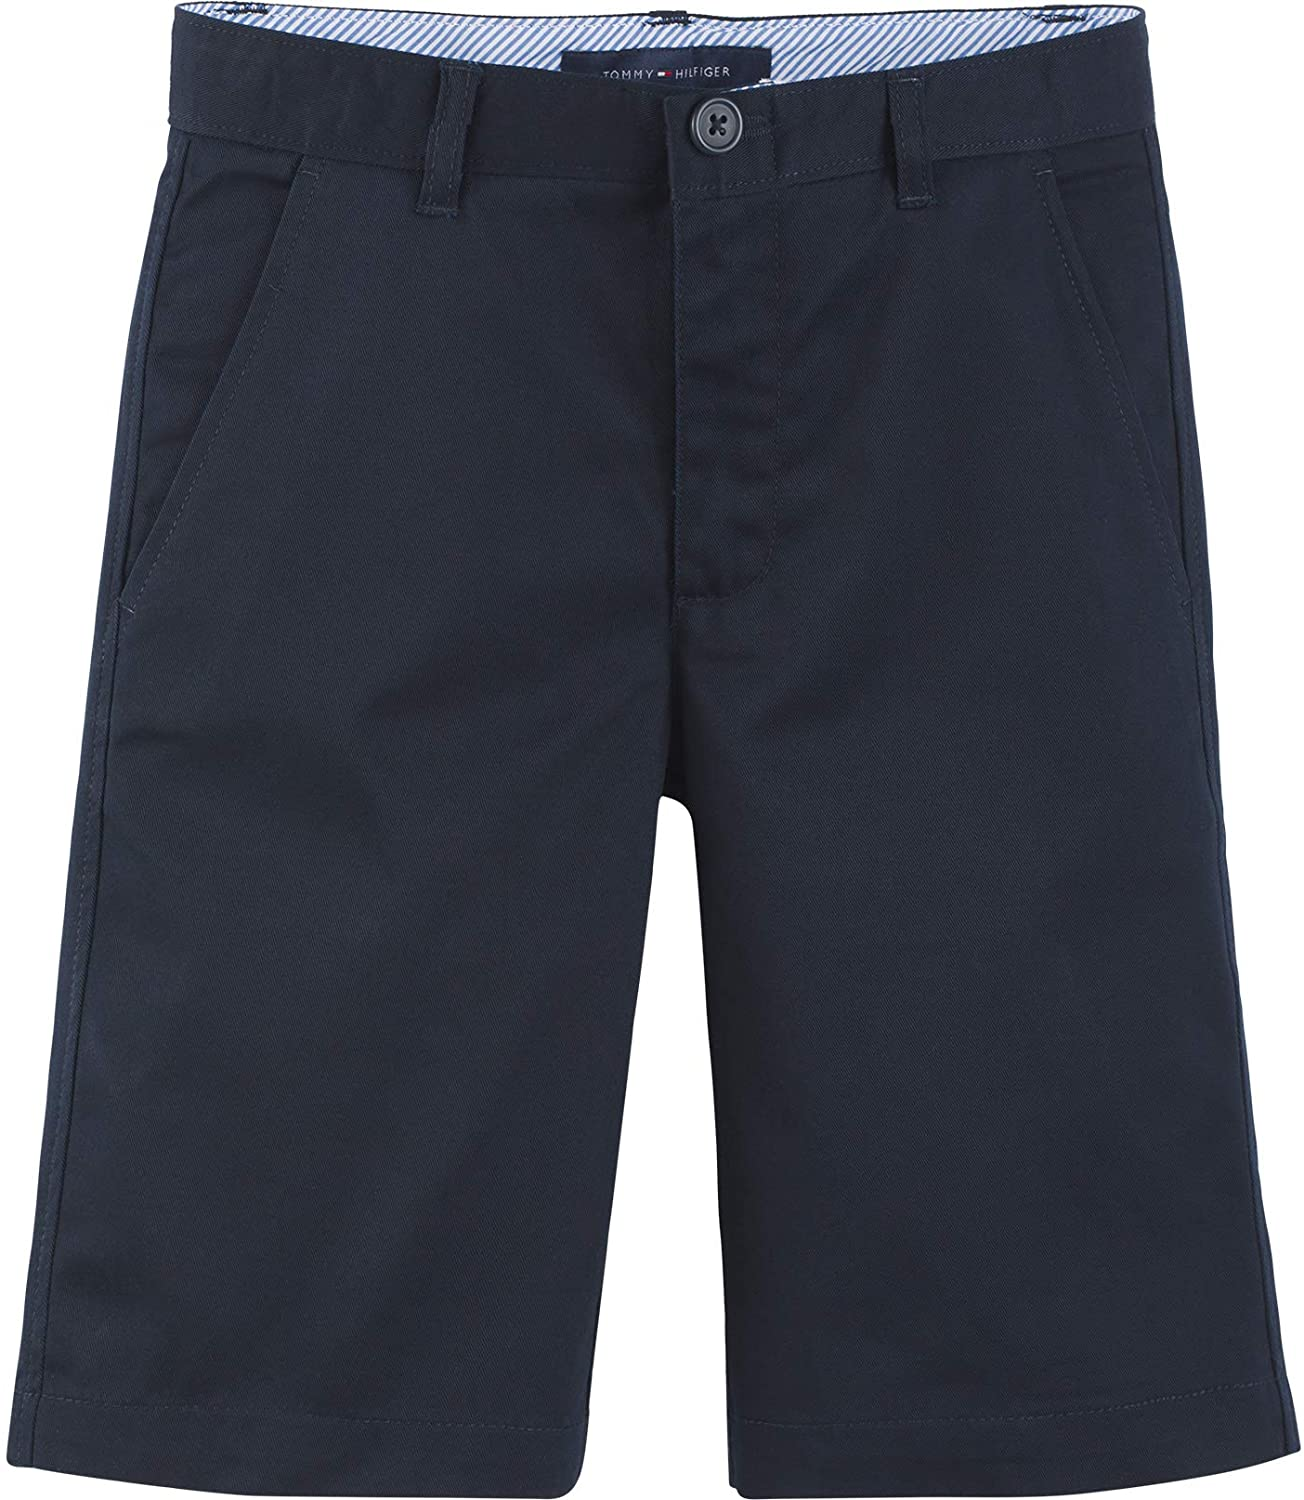 Tommy Hilfiger Flat Front Twill Blend Unifor New Free Shipping School Year-end annual account Shorts Kids